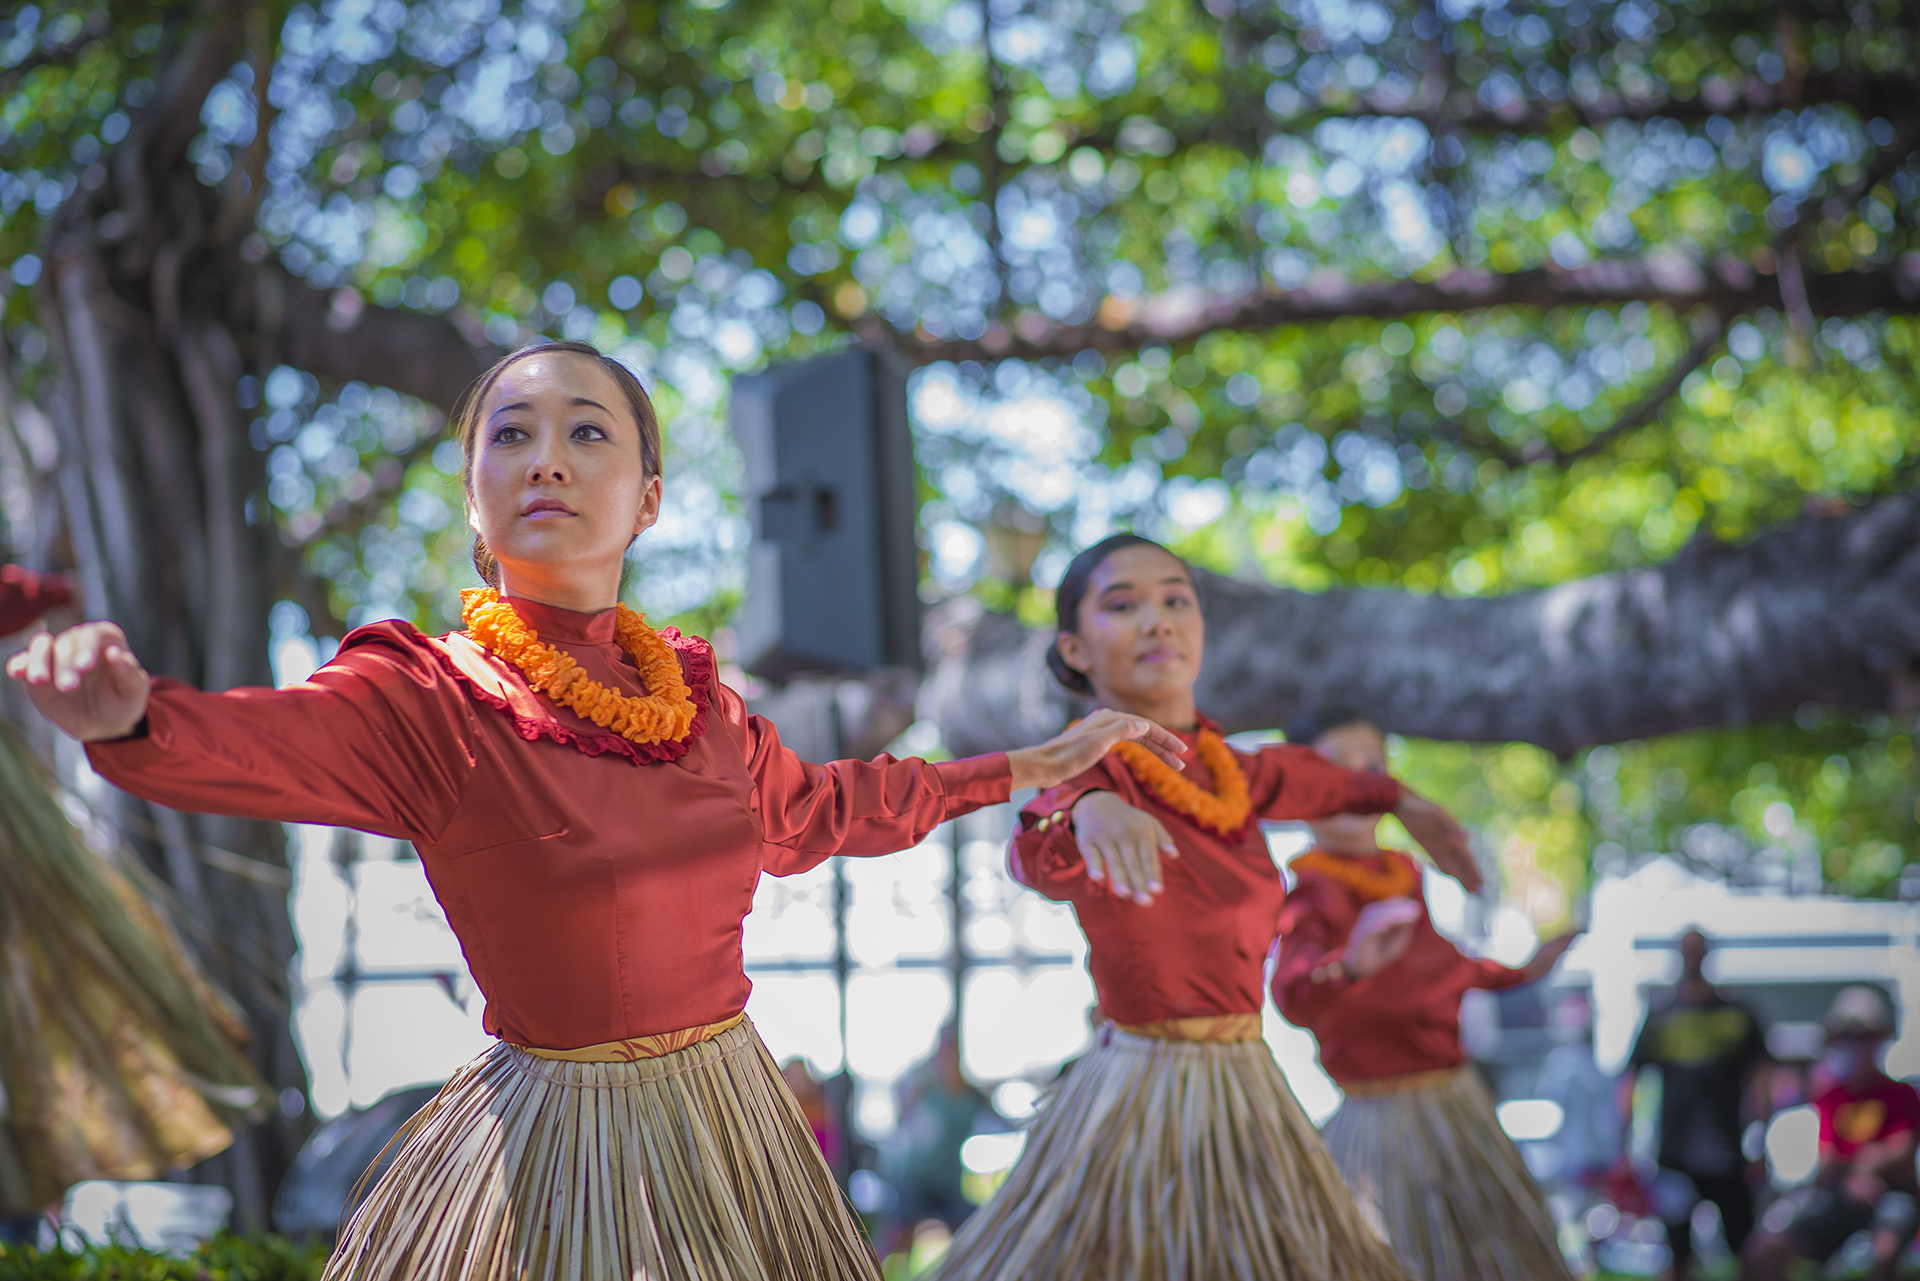 OHA Releases Grant Solicitations for $340,000 to Mālama Iwi Kupuna and Support Community Events